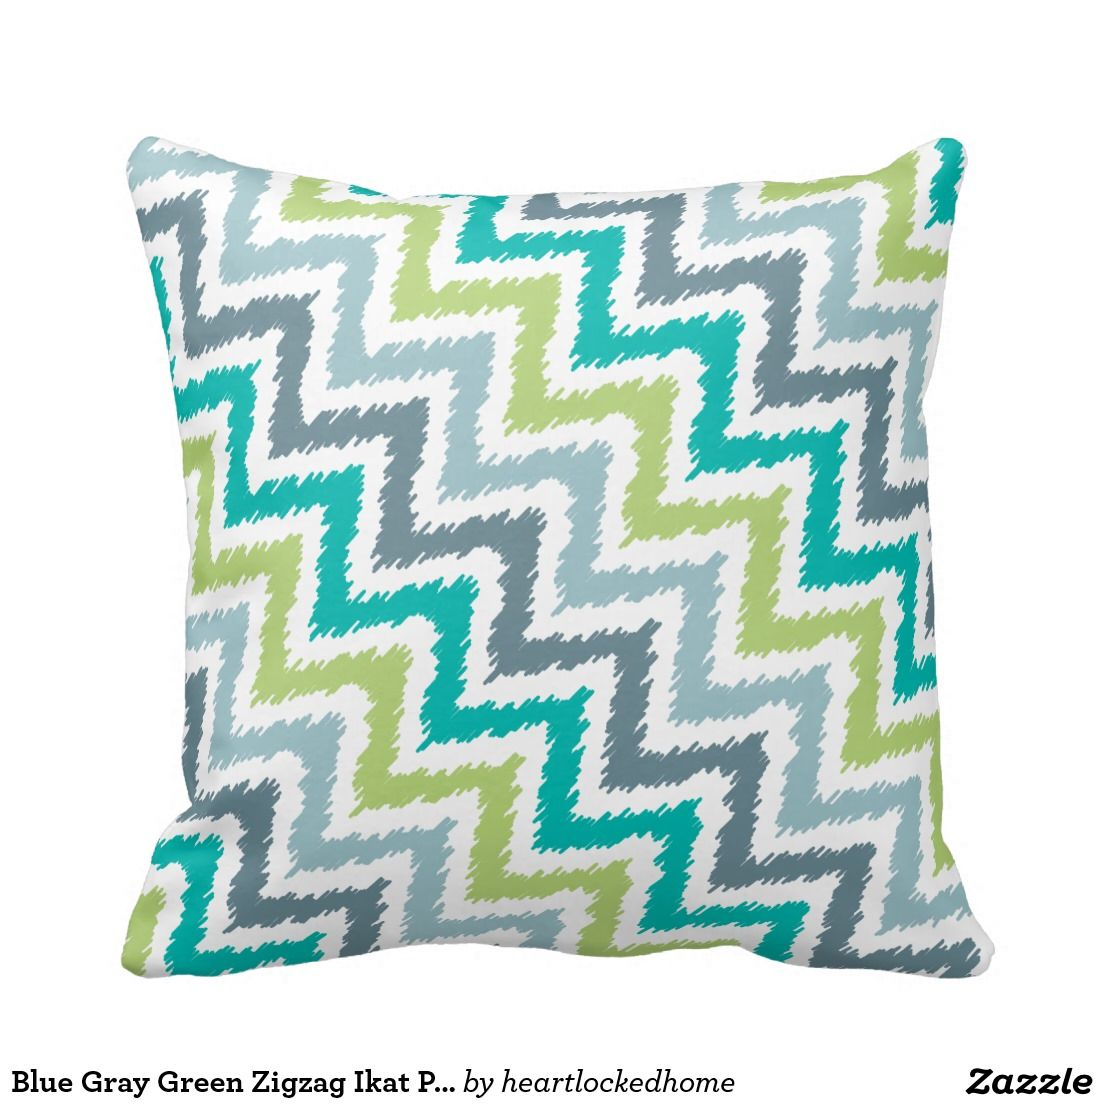 Blue gray green zigzag ikat pattern pillows green with envy